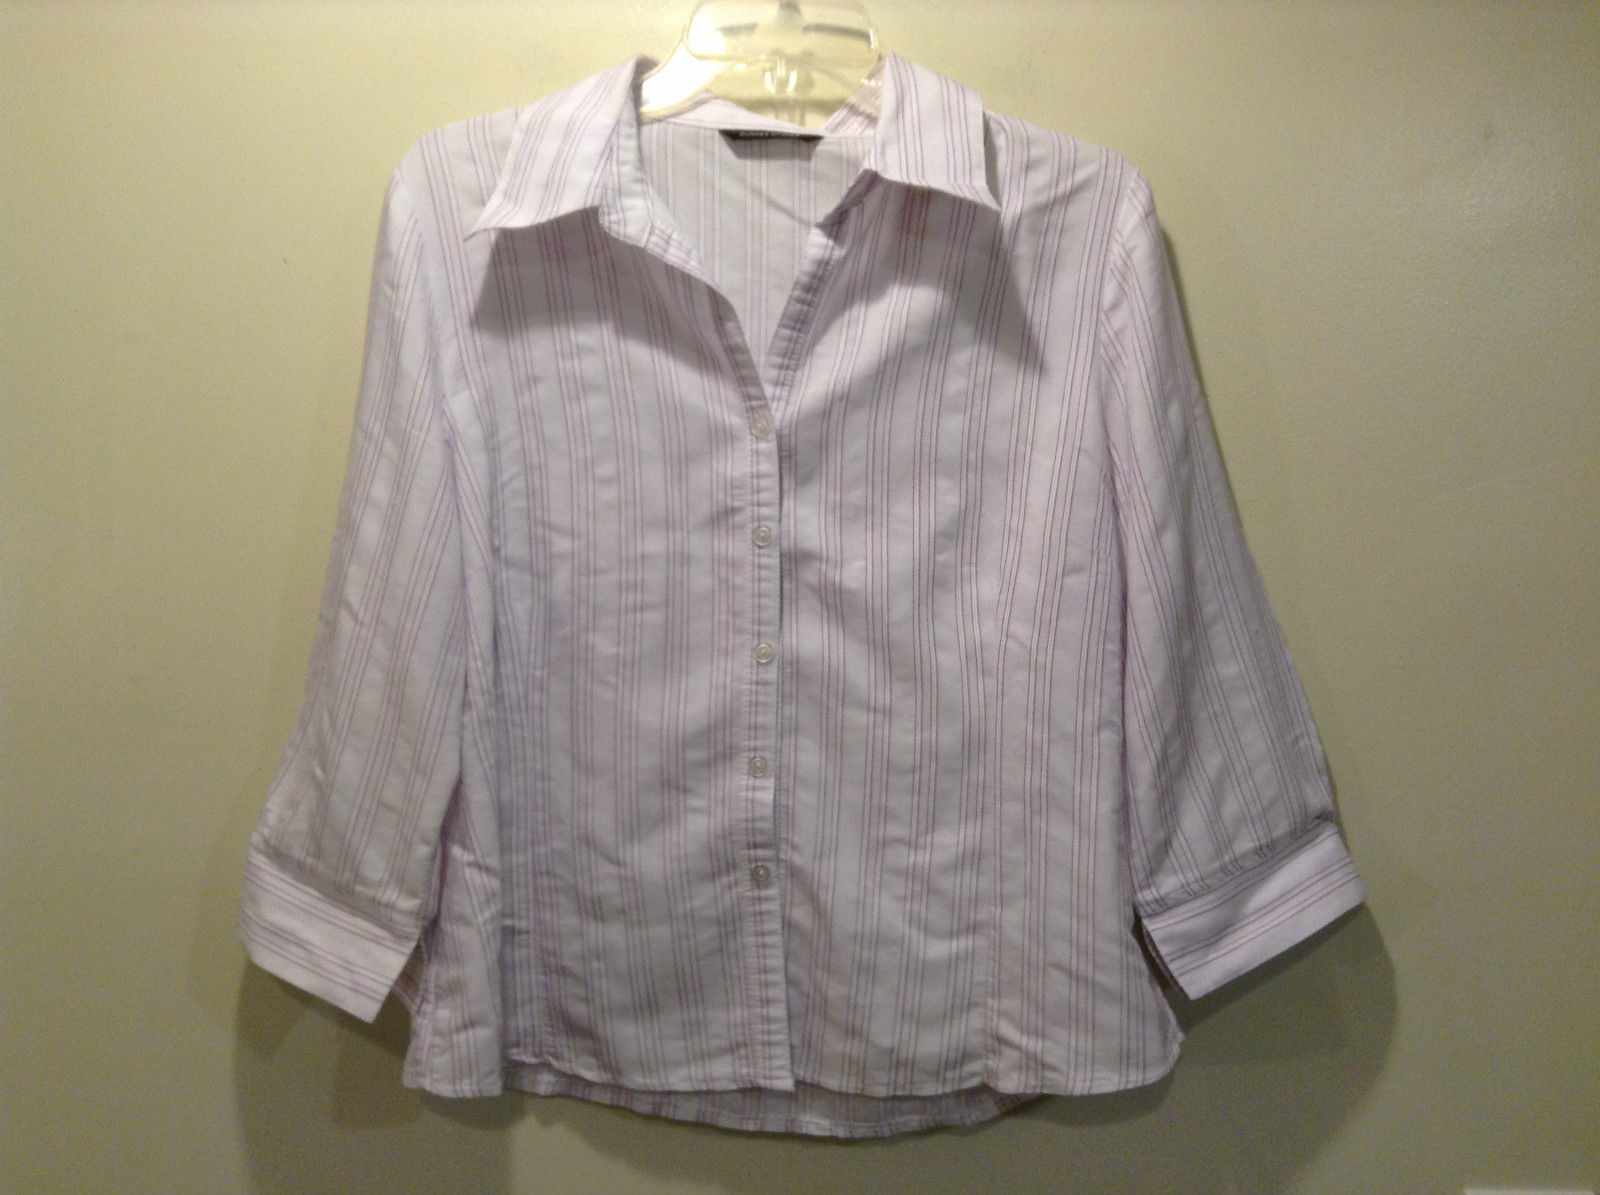 Lavender White with Purple Stripes Button Down Shirt Dunnes Stores Size 16